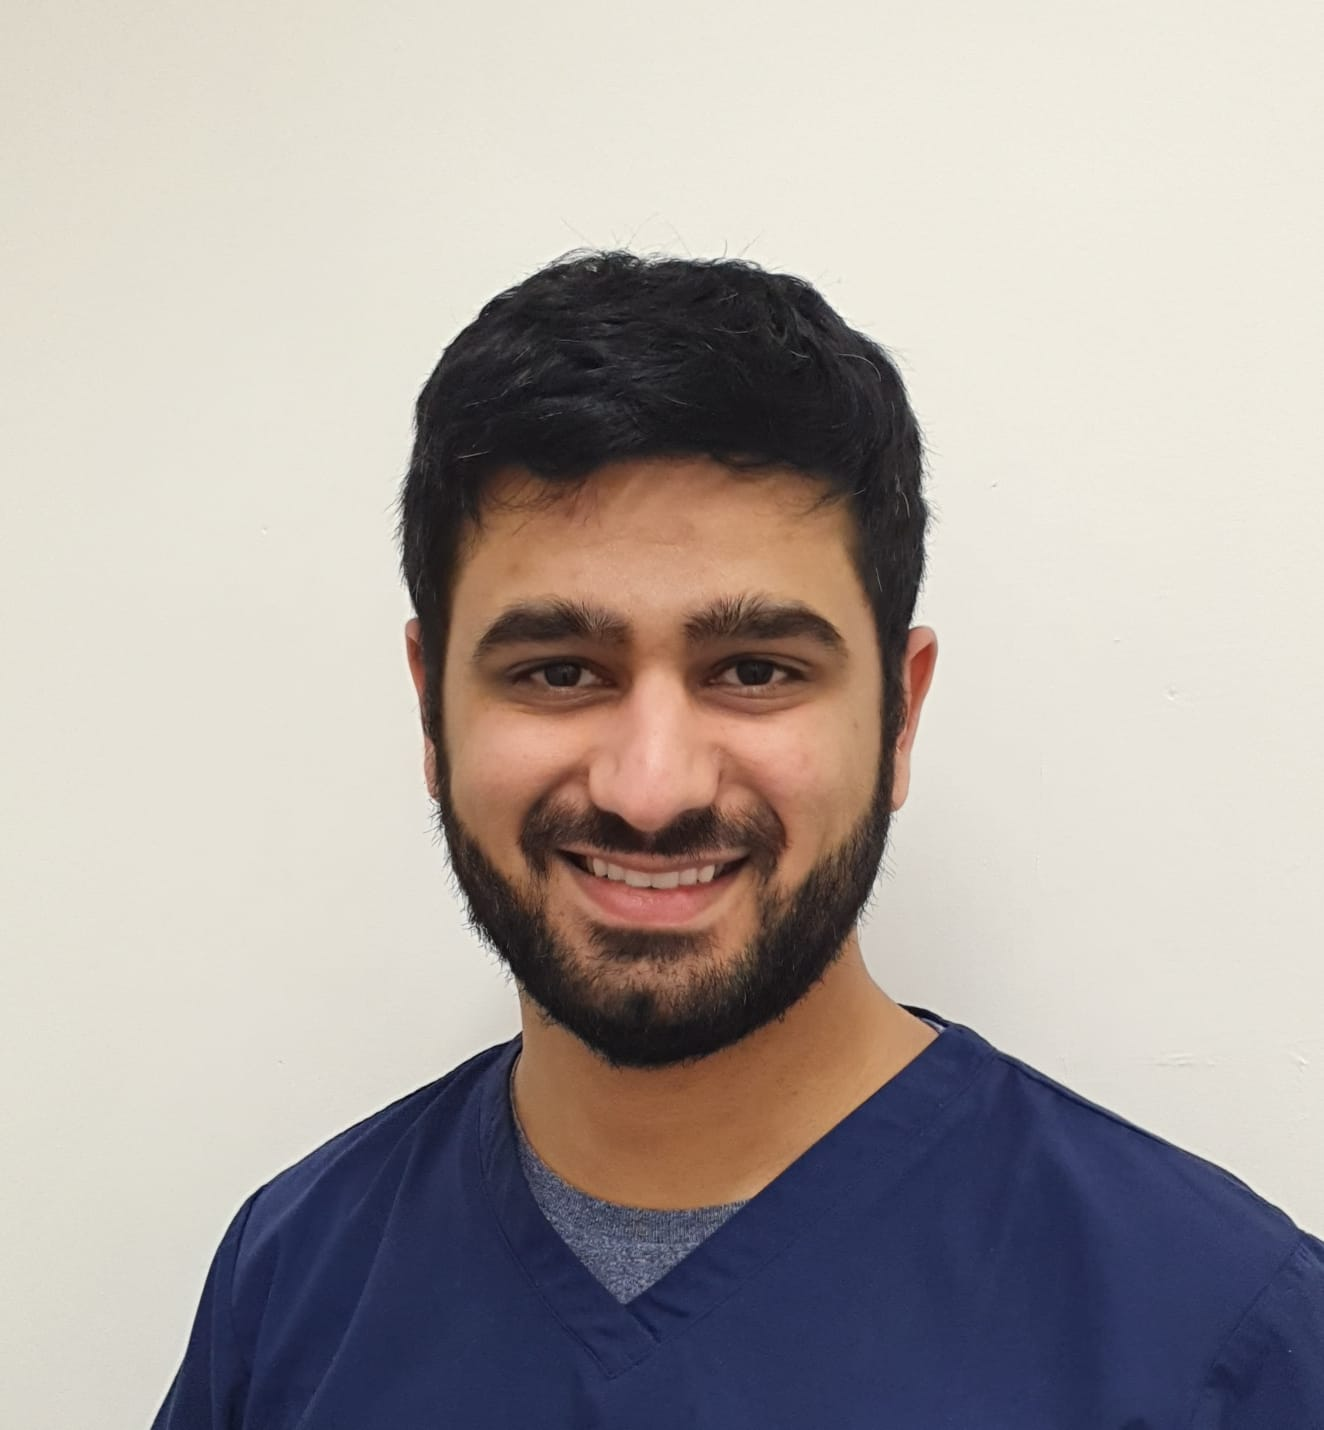 Dr Ricky Ruparelia, Dentist at Etwall Dental Practice